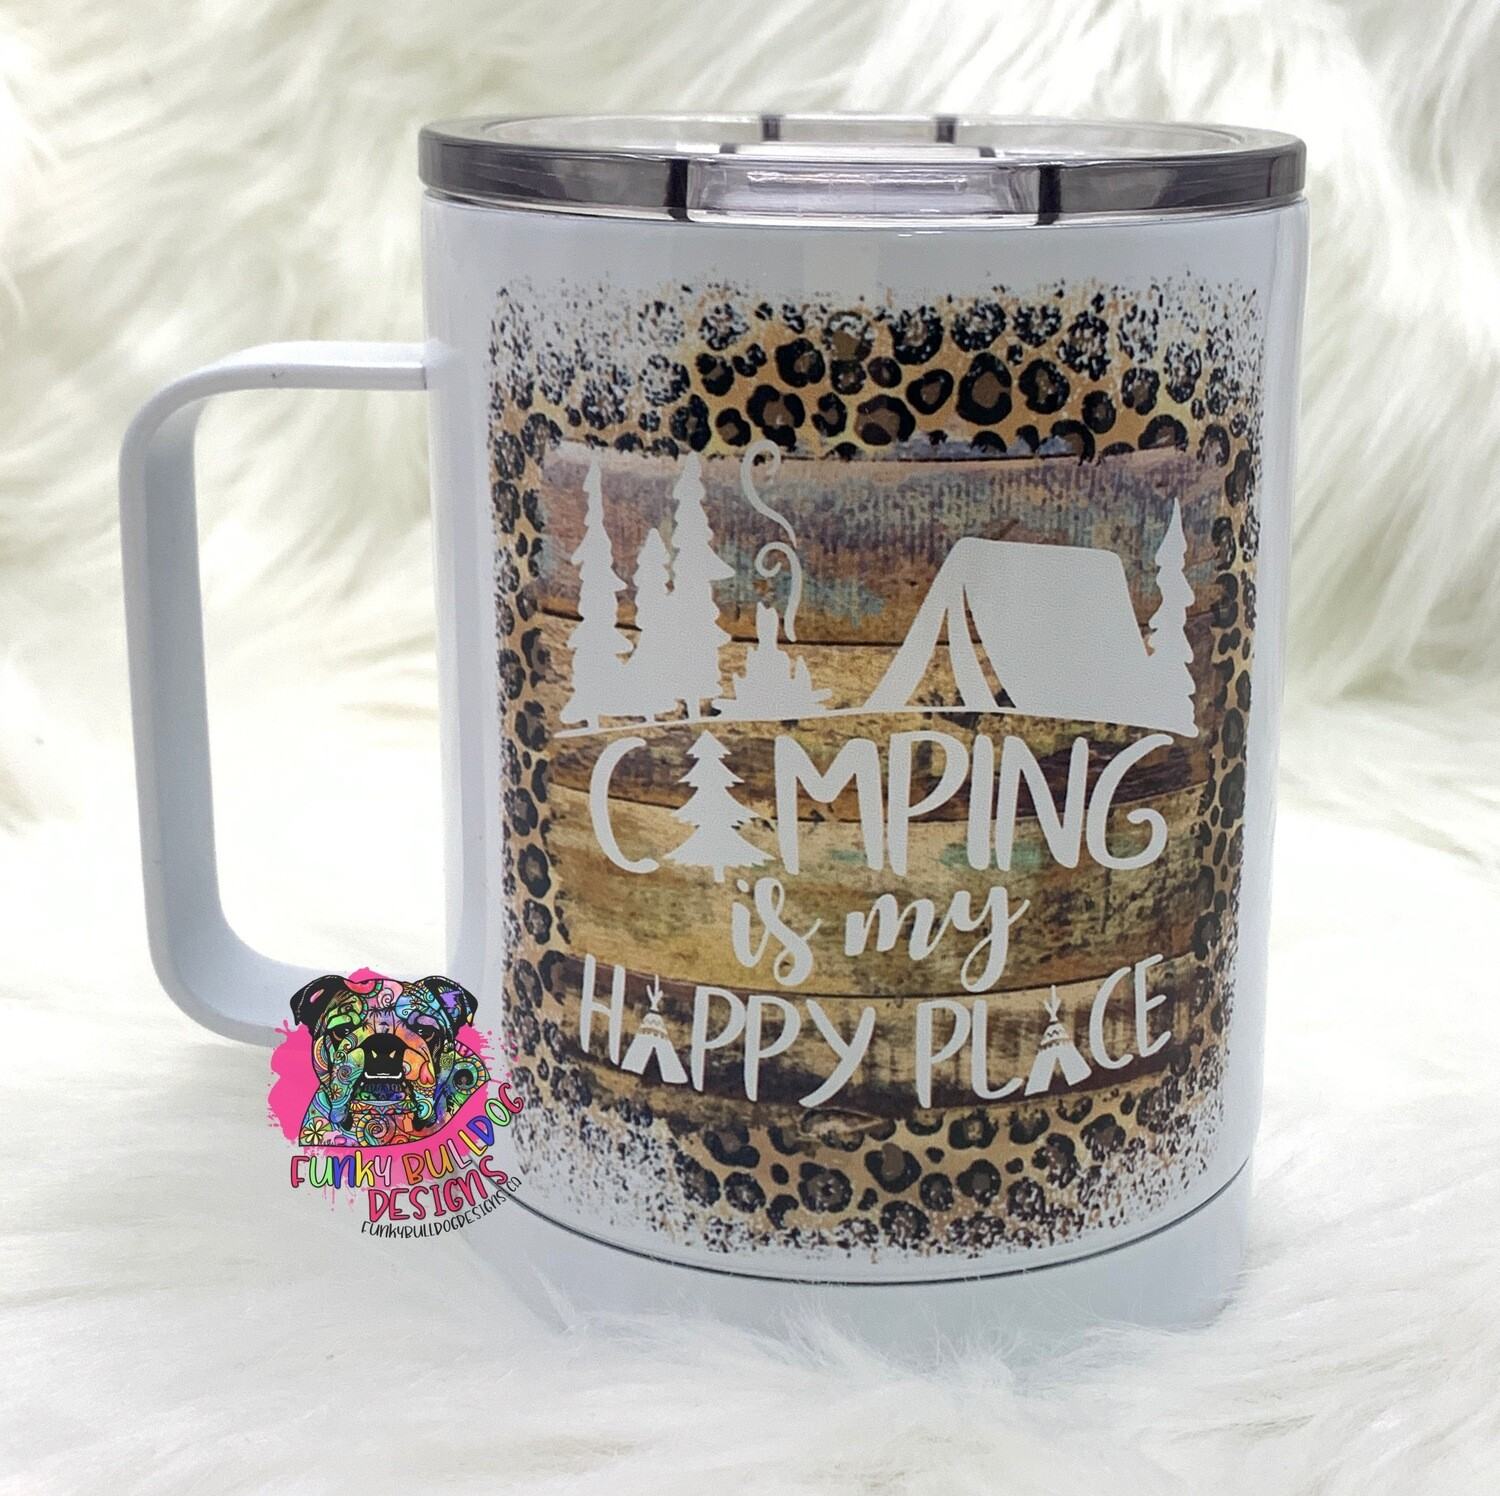 14oz Stainless Steel Coffee Mug - Camping is my happy place - leopard print